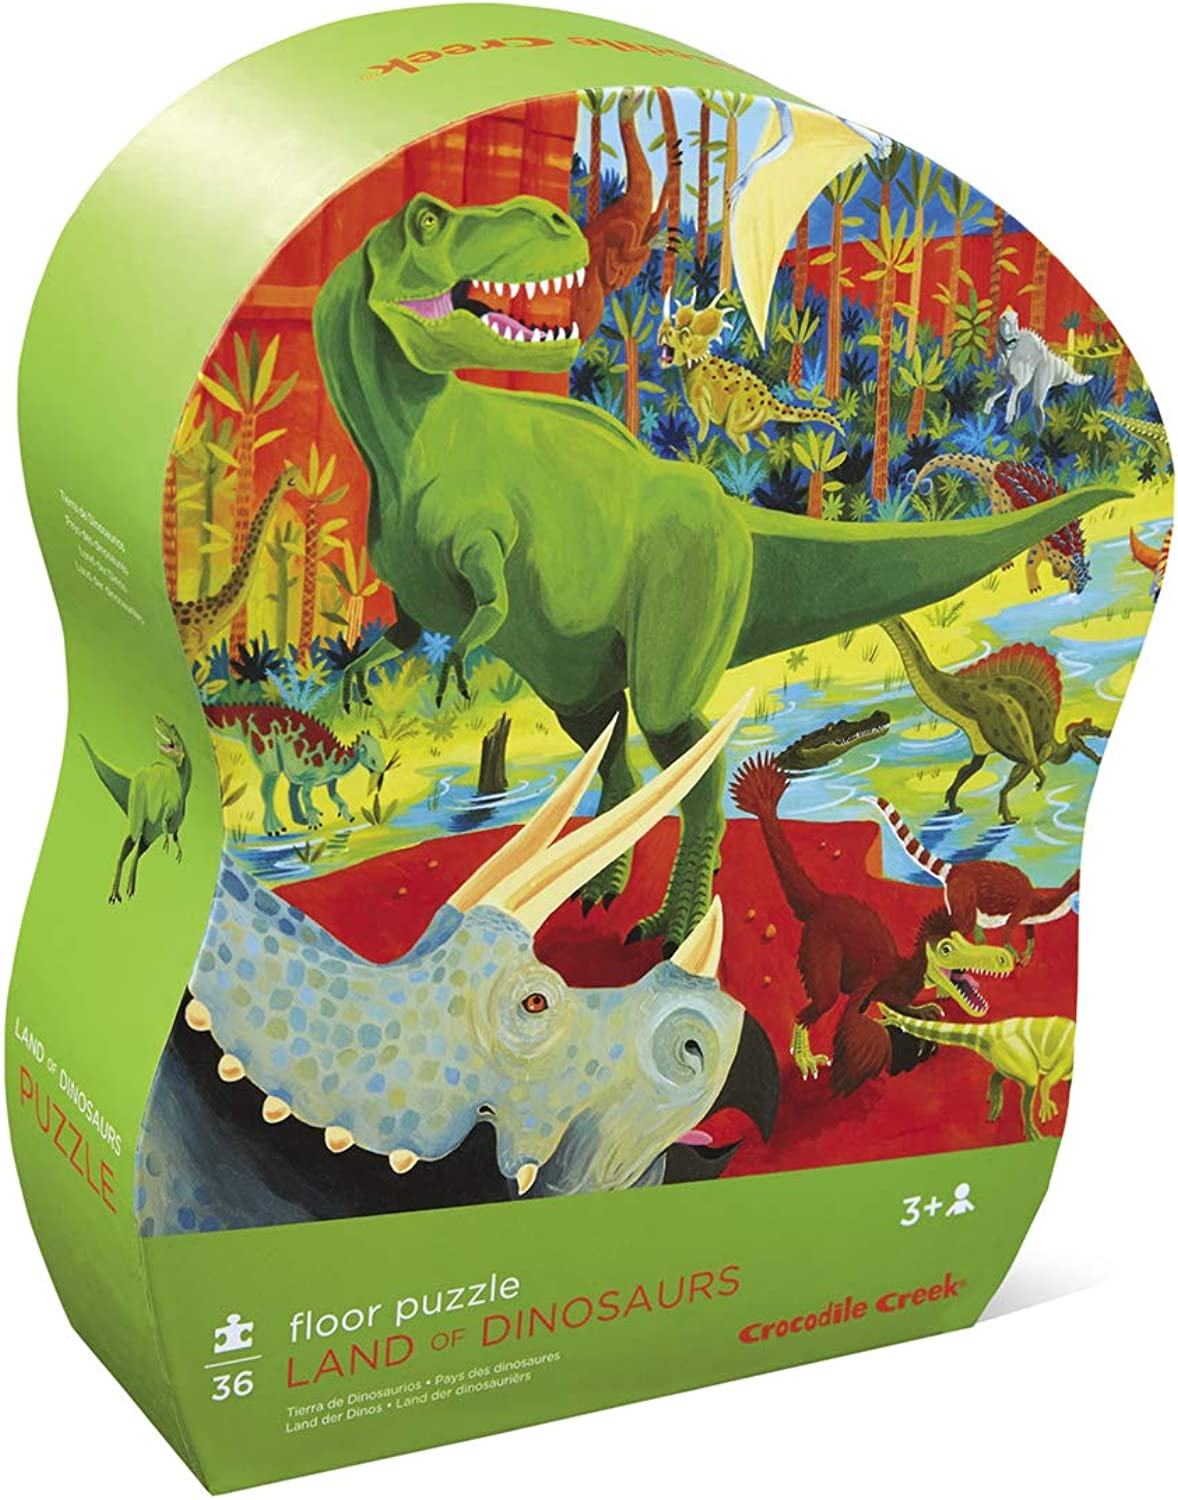 Crocodile Creek Land of Dinosaurs 36 Piece Jigsaw Floor Puzzle